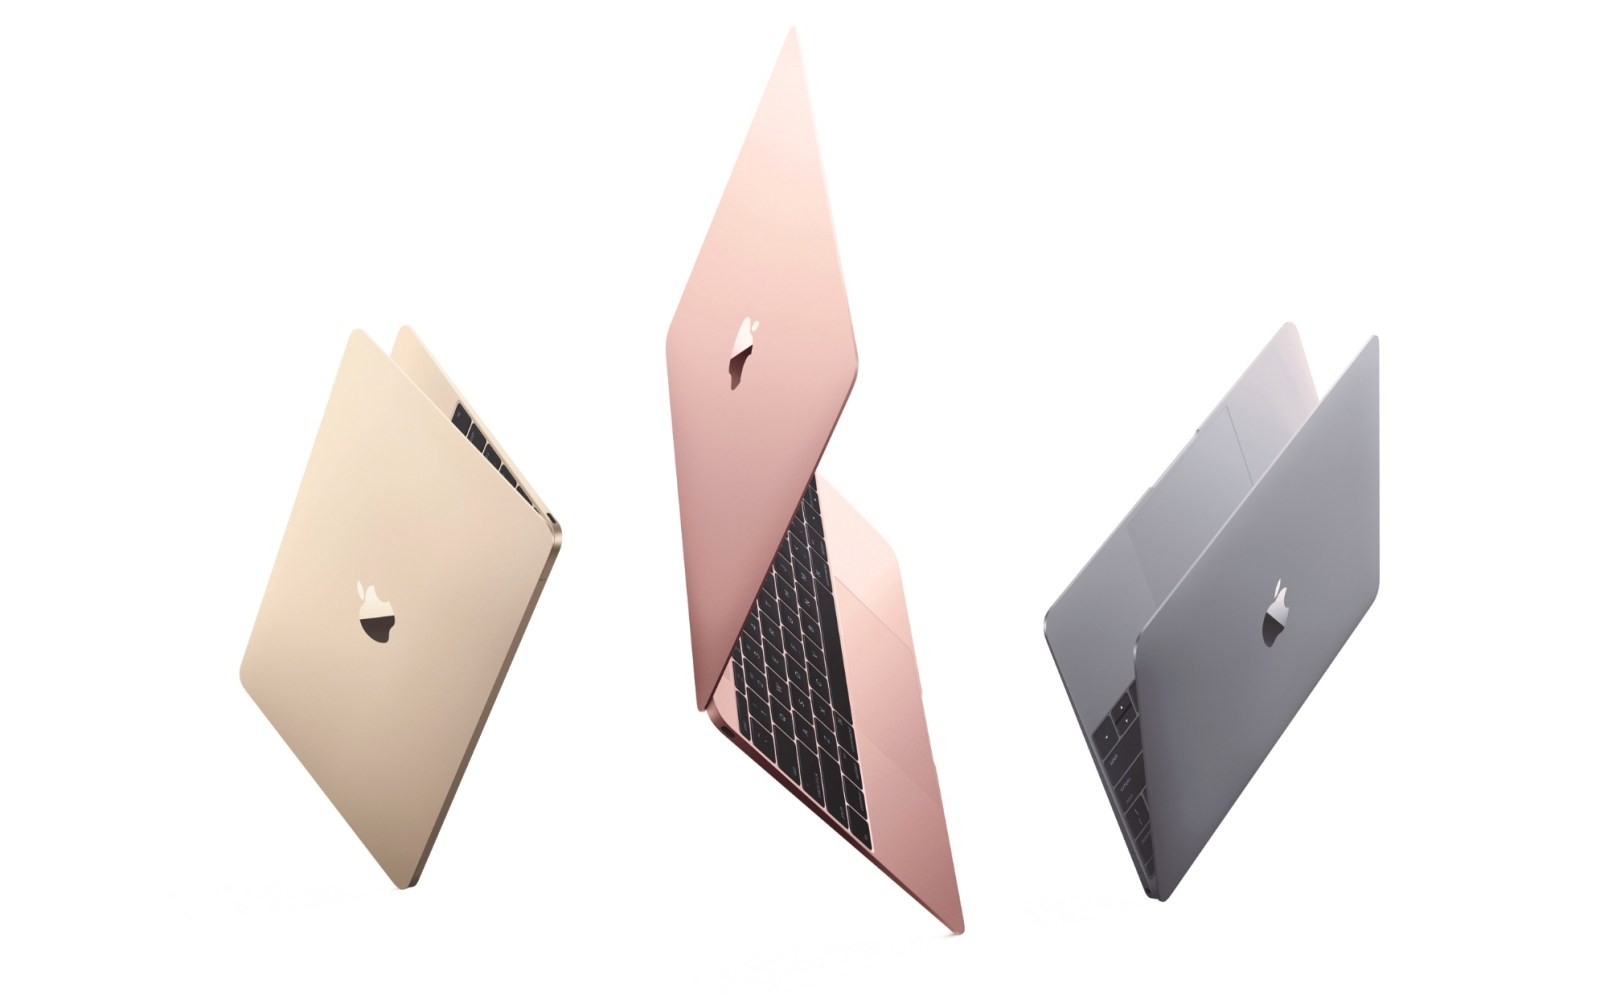 Apple releases new 12-inch Retina MacBook: new processors, rose gold, better battery life